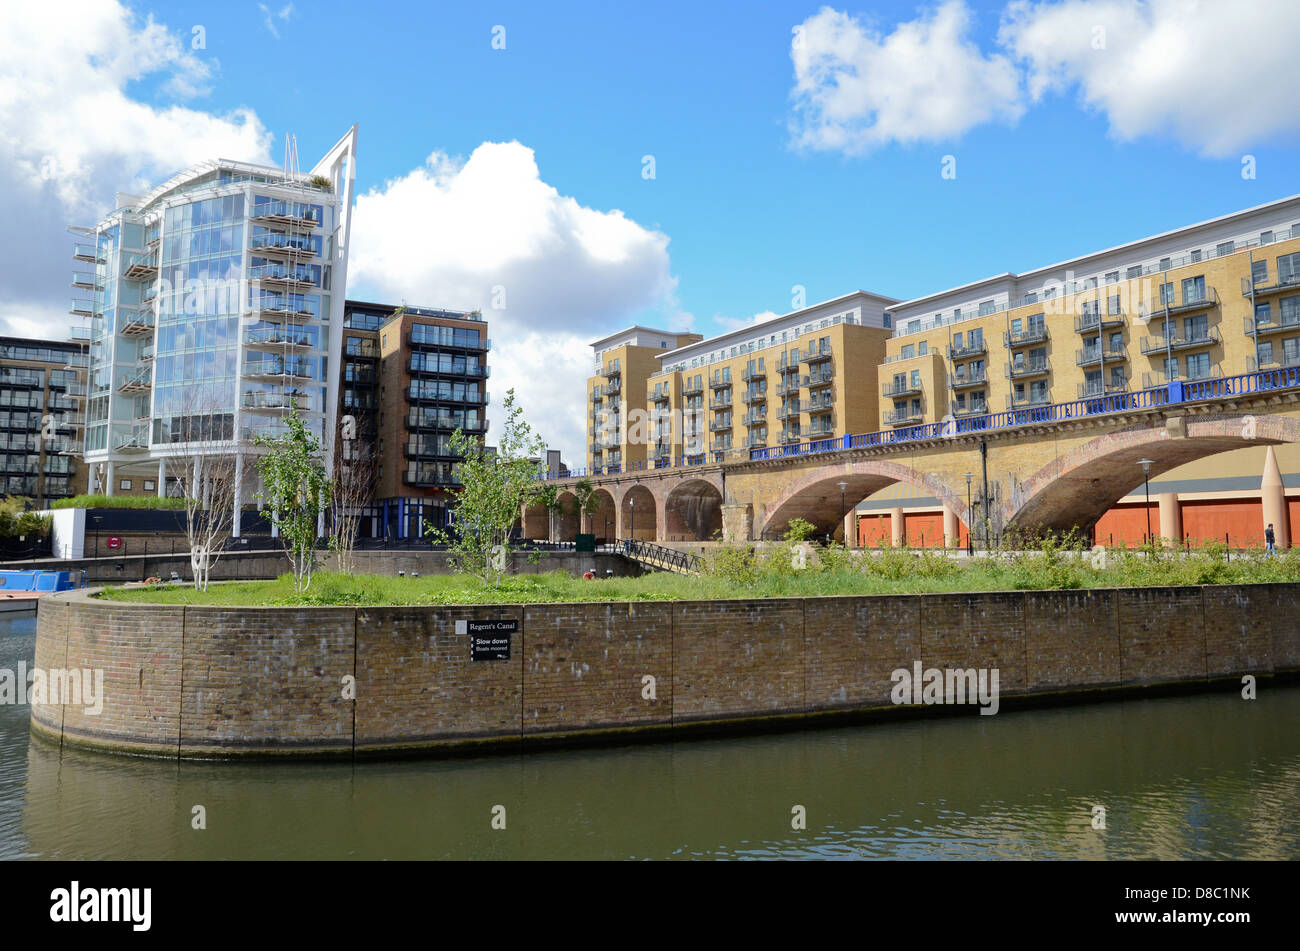 Limehouse Basin and Marina in the London Docklands - Stock Image